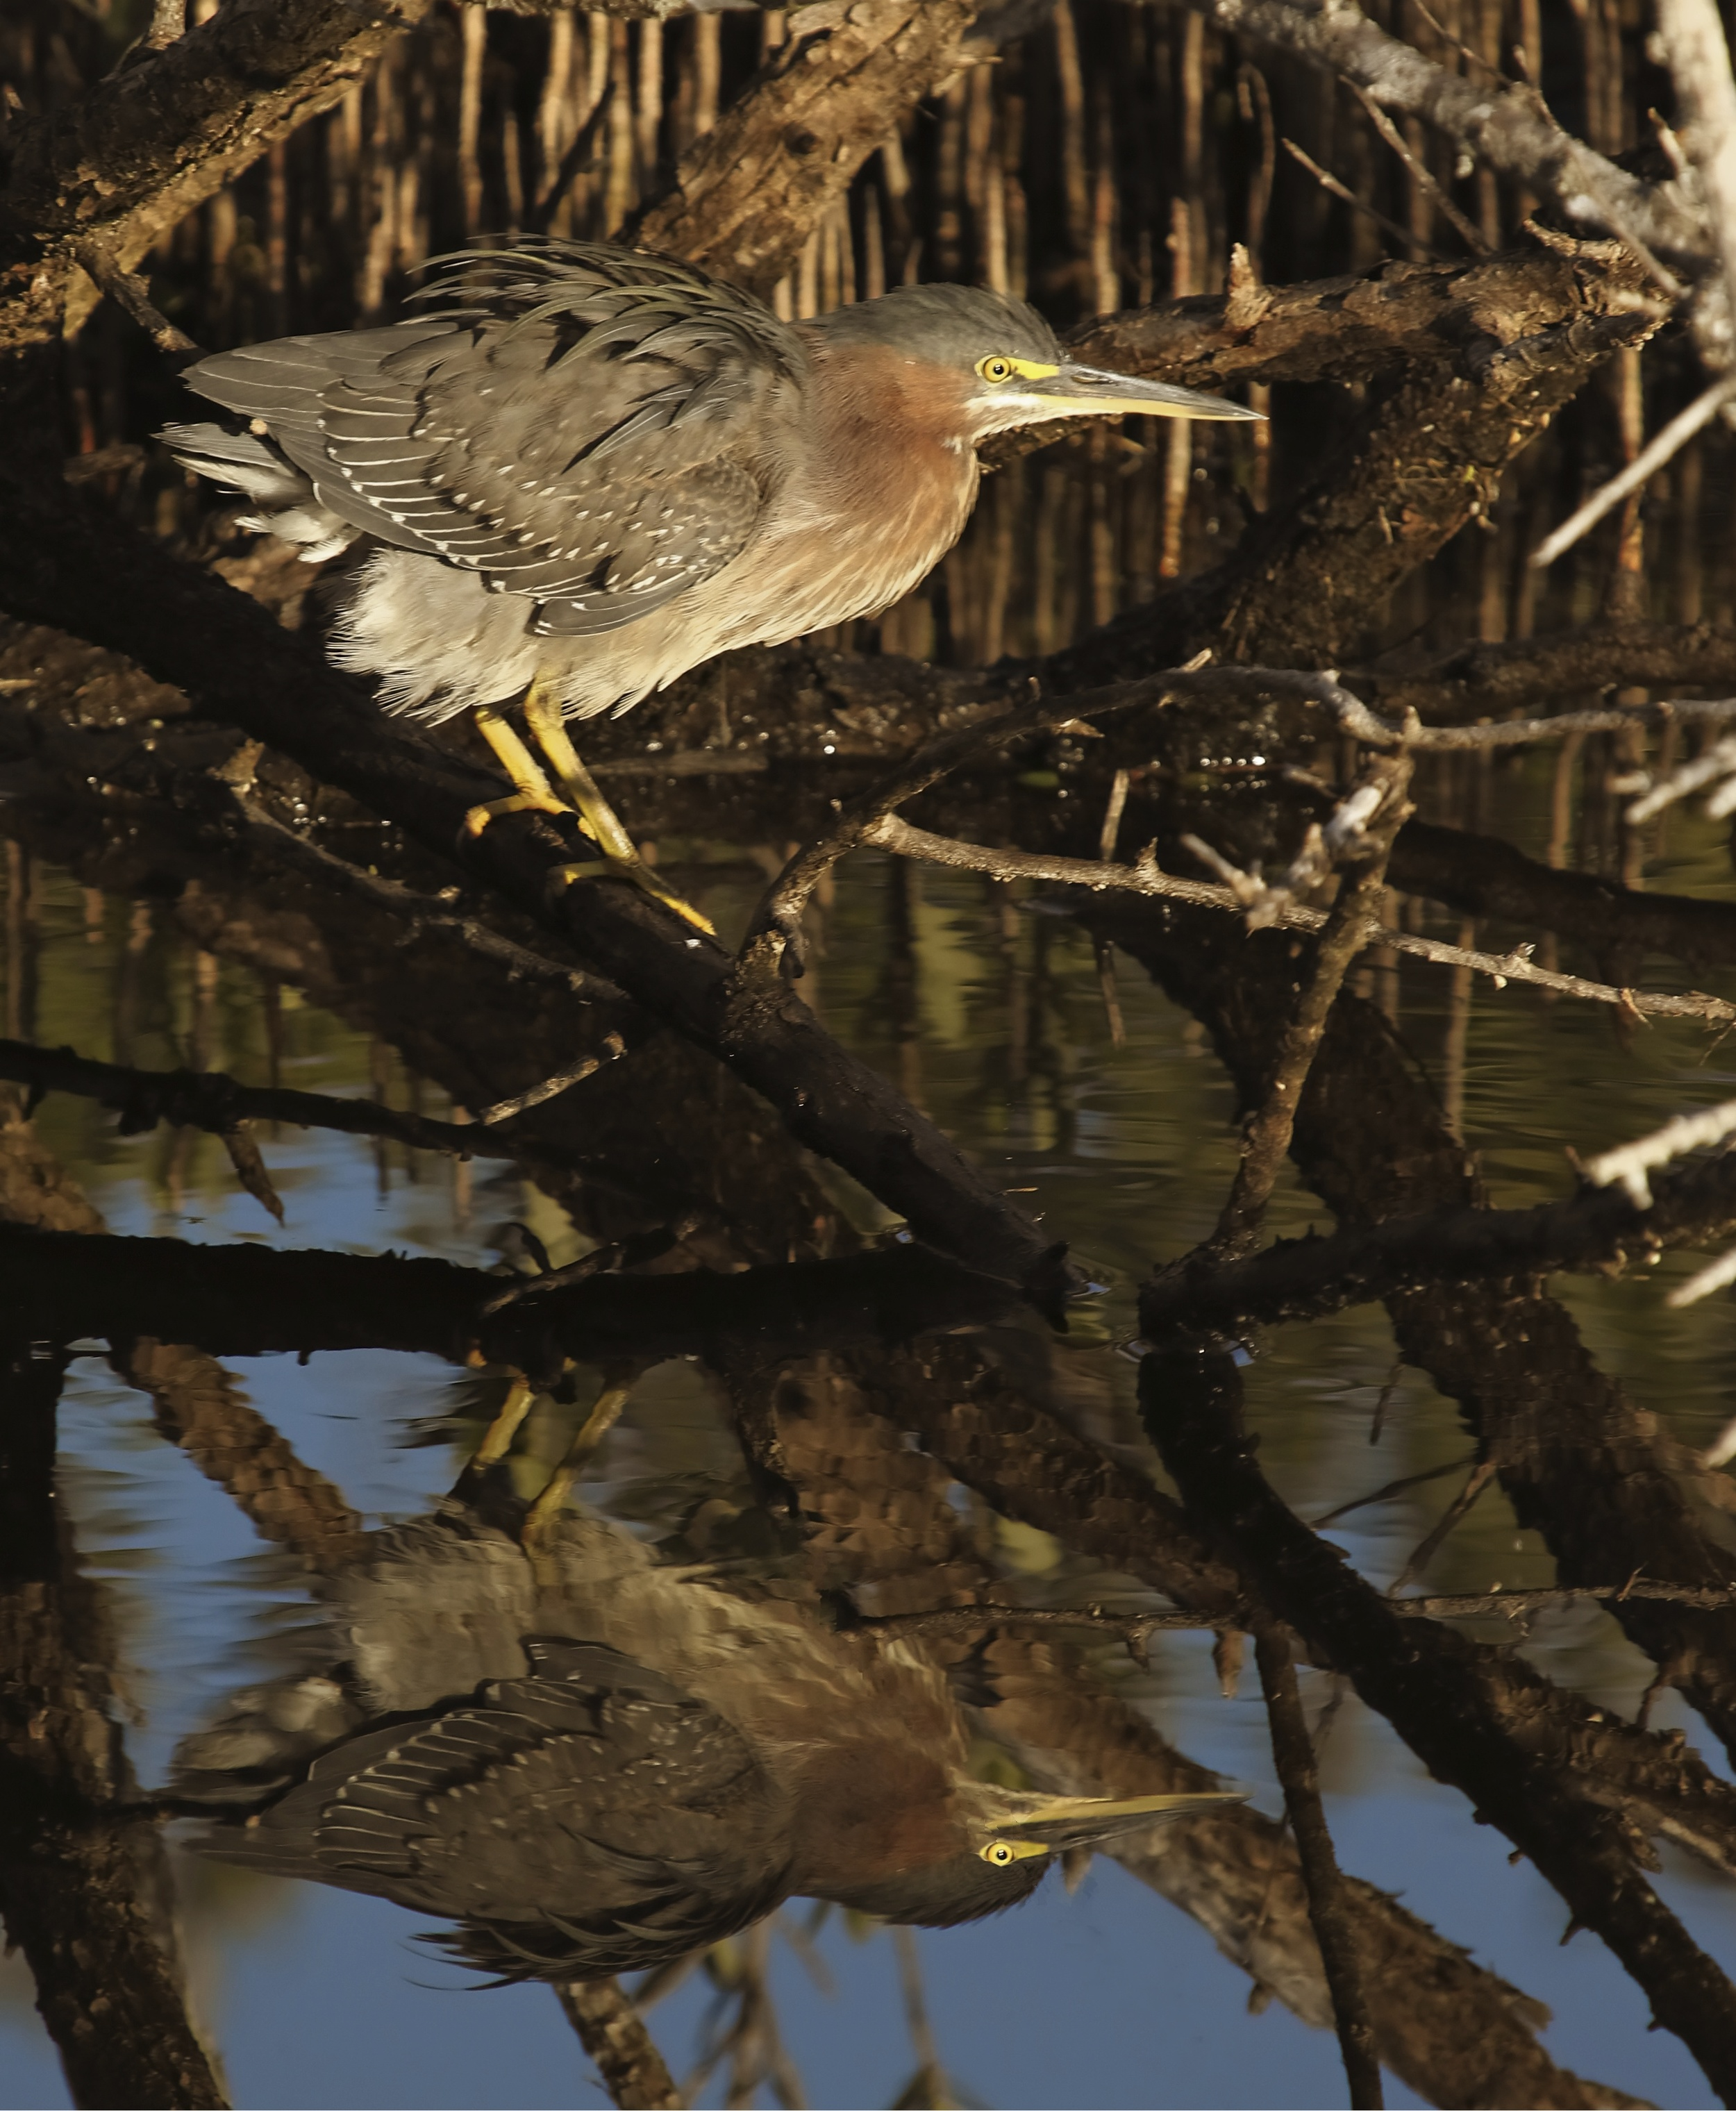 A Little Green Heron reflects in the morning light.